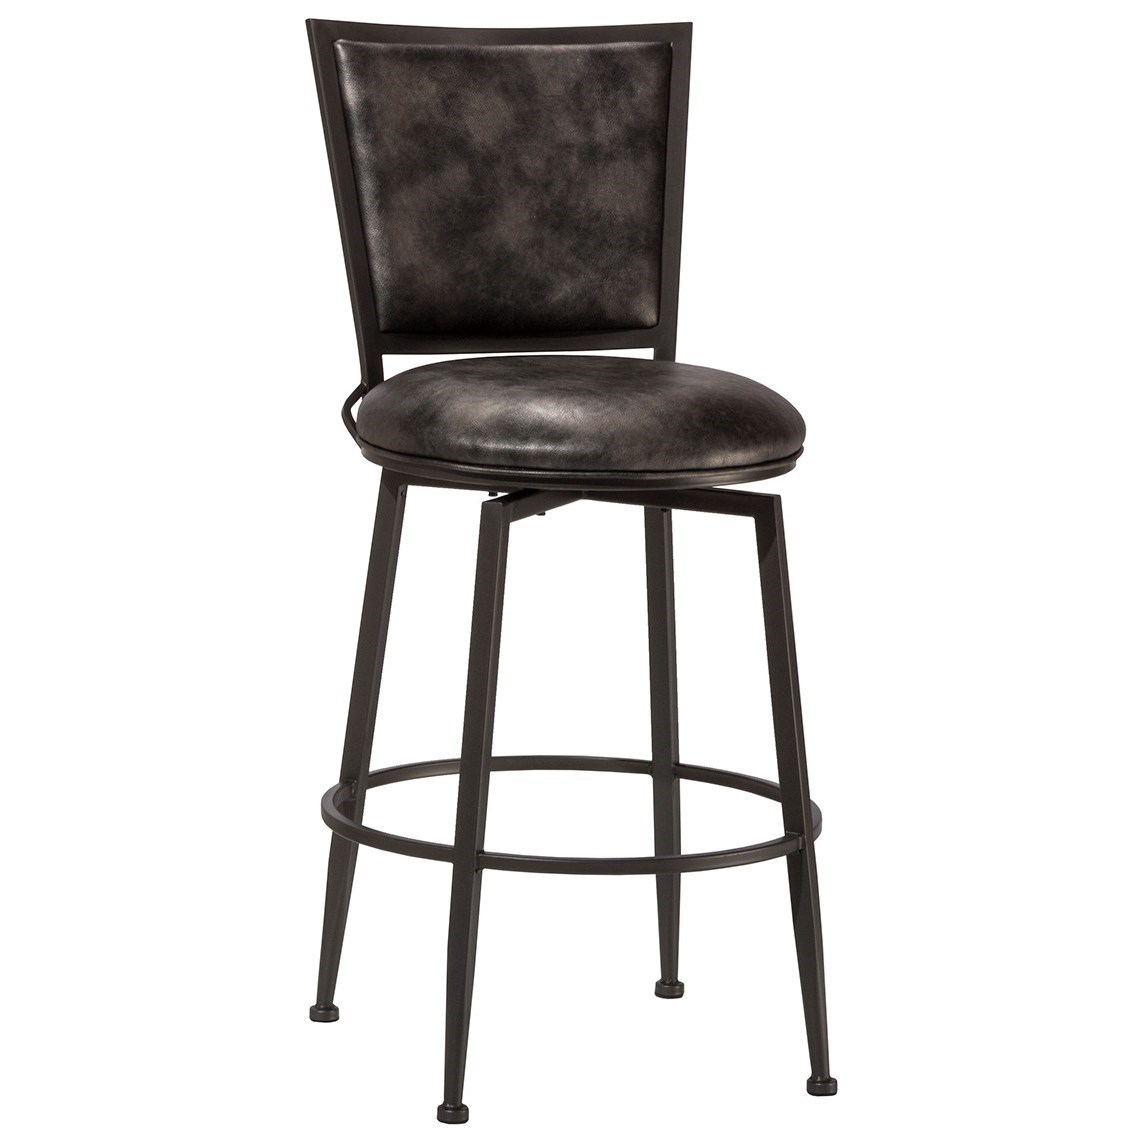 Rockvale Swivel Counter Stool by Hillsdale at SuperStore